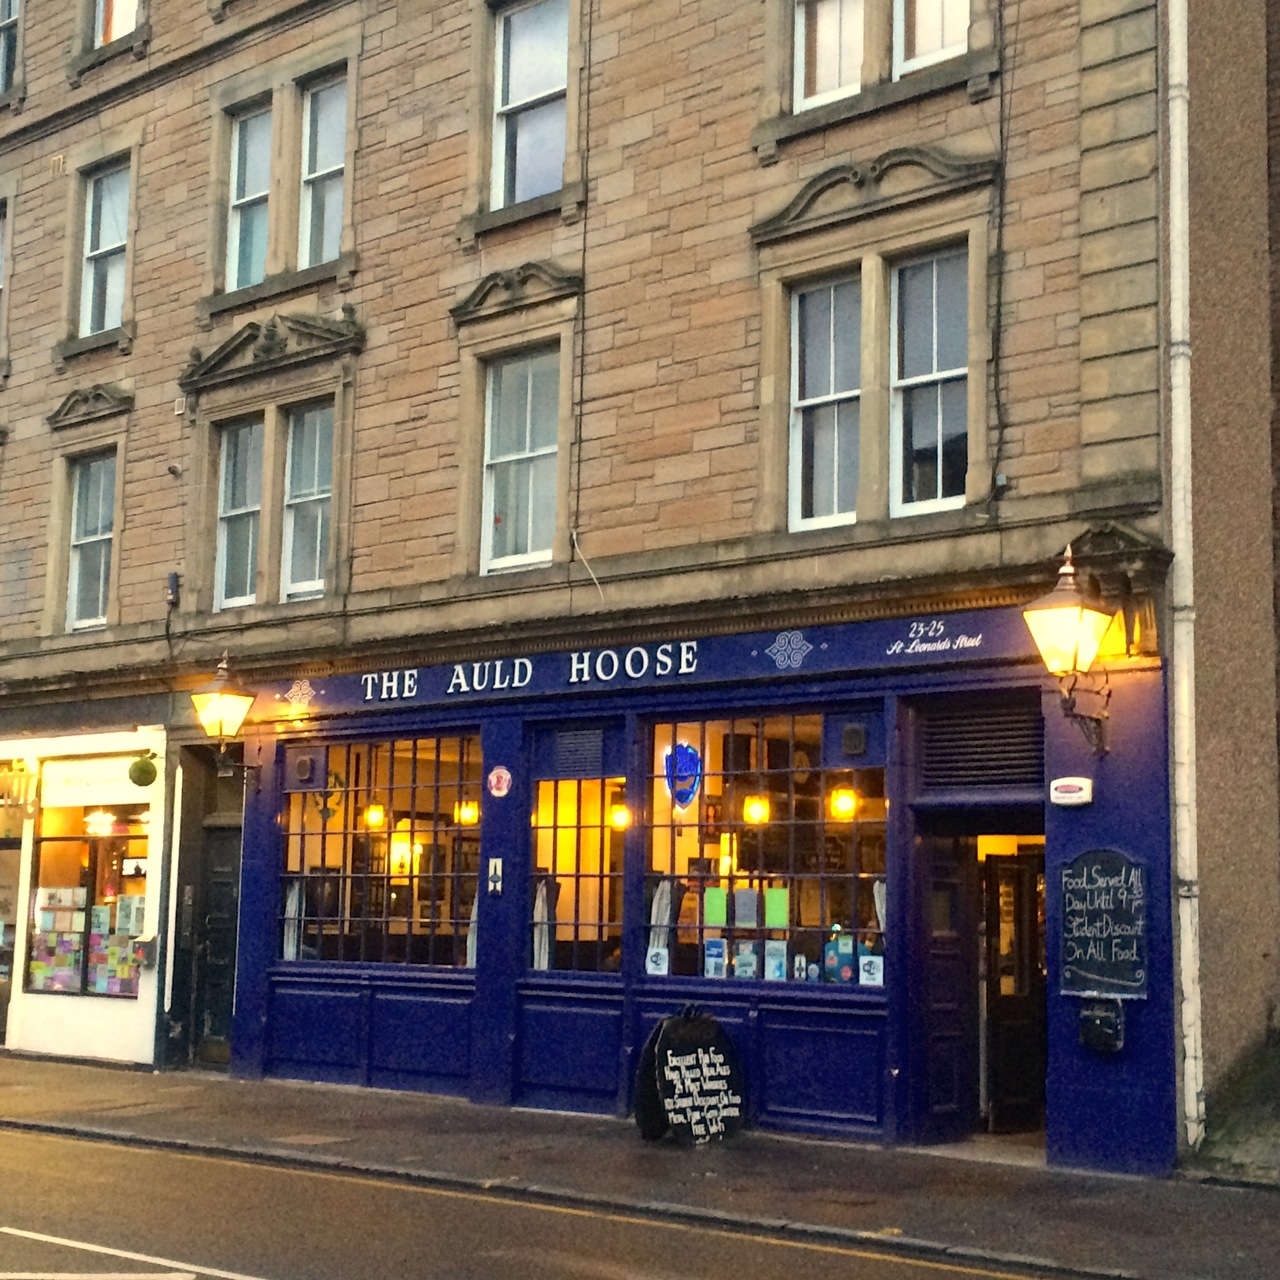 https://i1.wp.com/fatgayvegan.com/wp-content/uploads/2015/08/The-Auld-Hoose-Edinburgh.jpg?fit=1280%2C1280